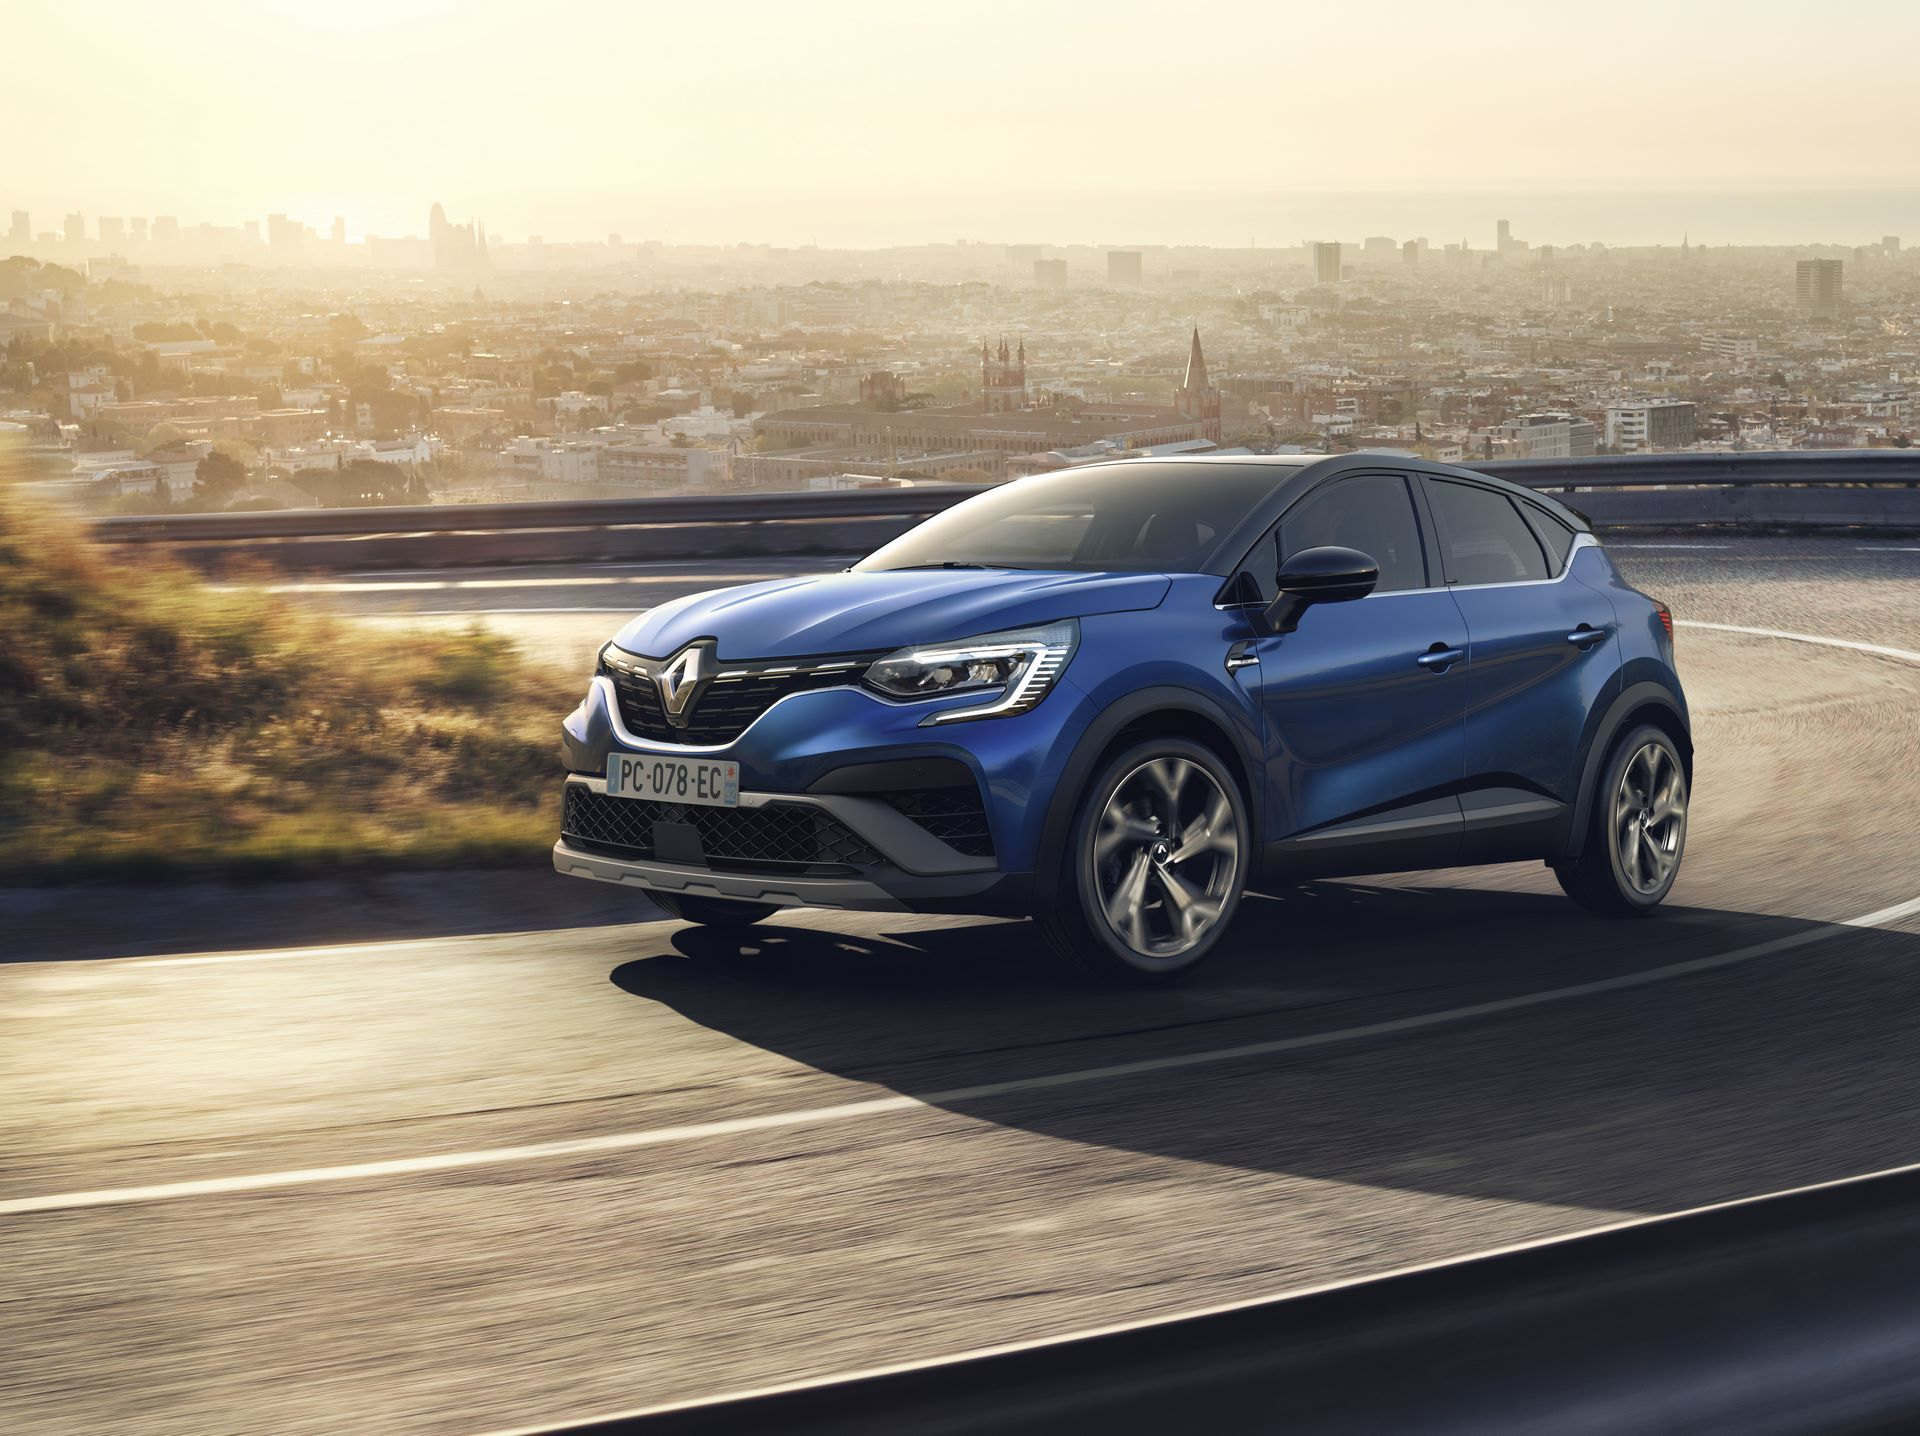 RENAULT CAPTUR E-TECH (HJB HEV) - PHASE 1